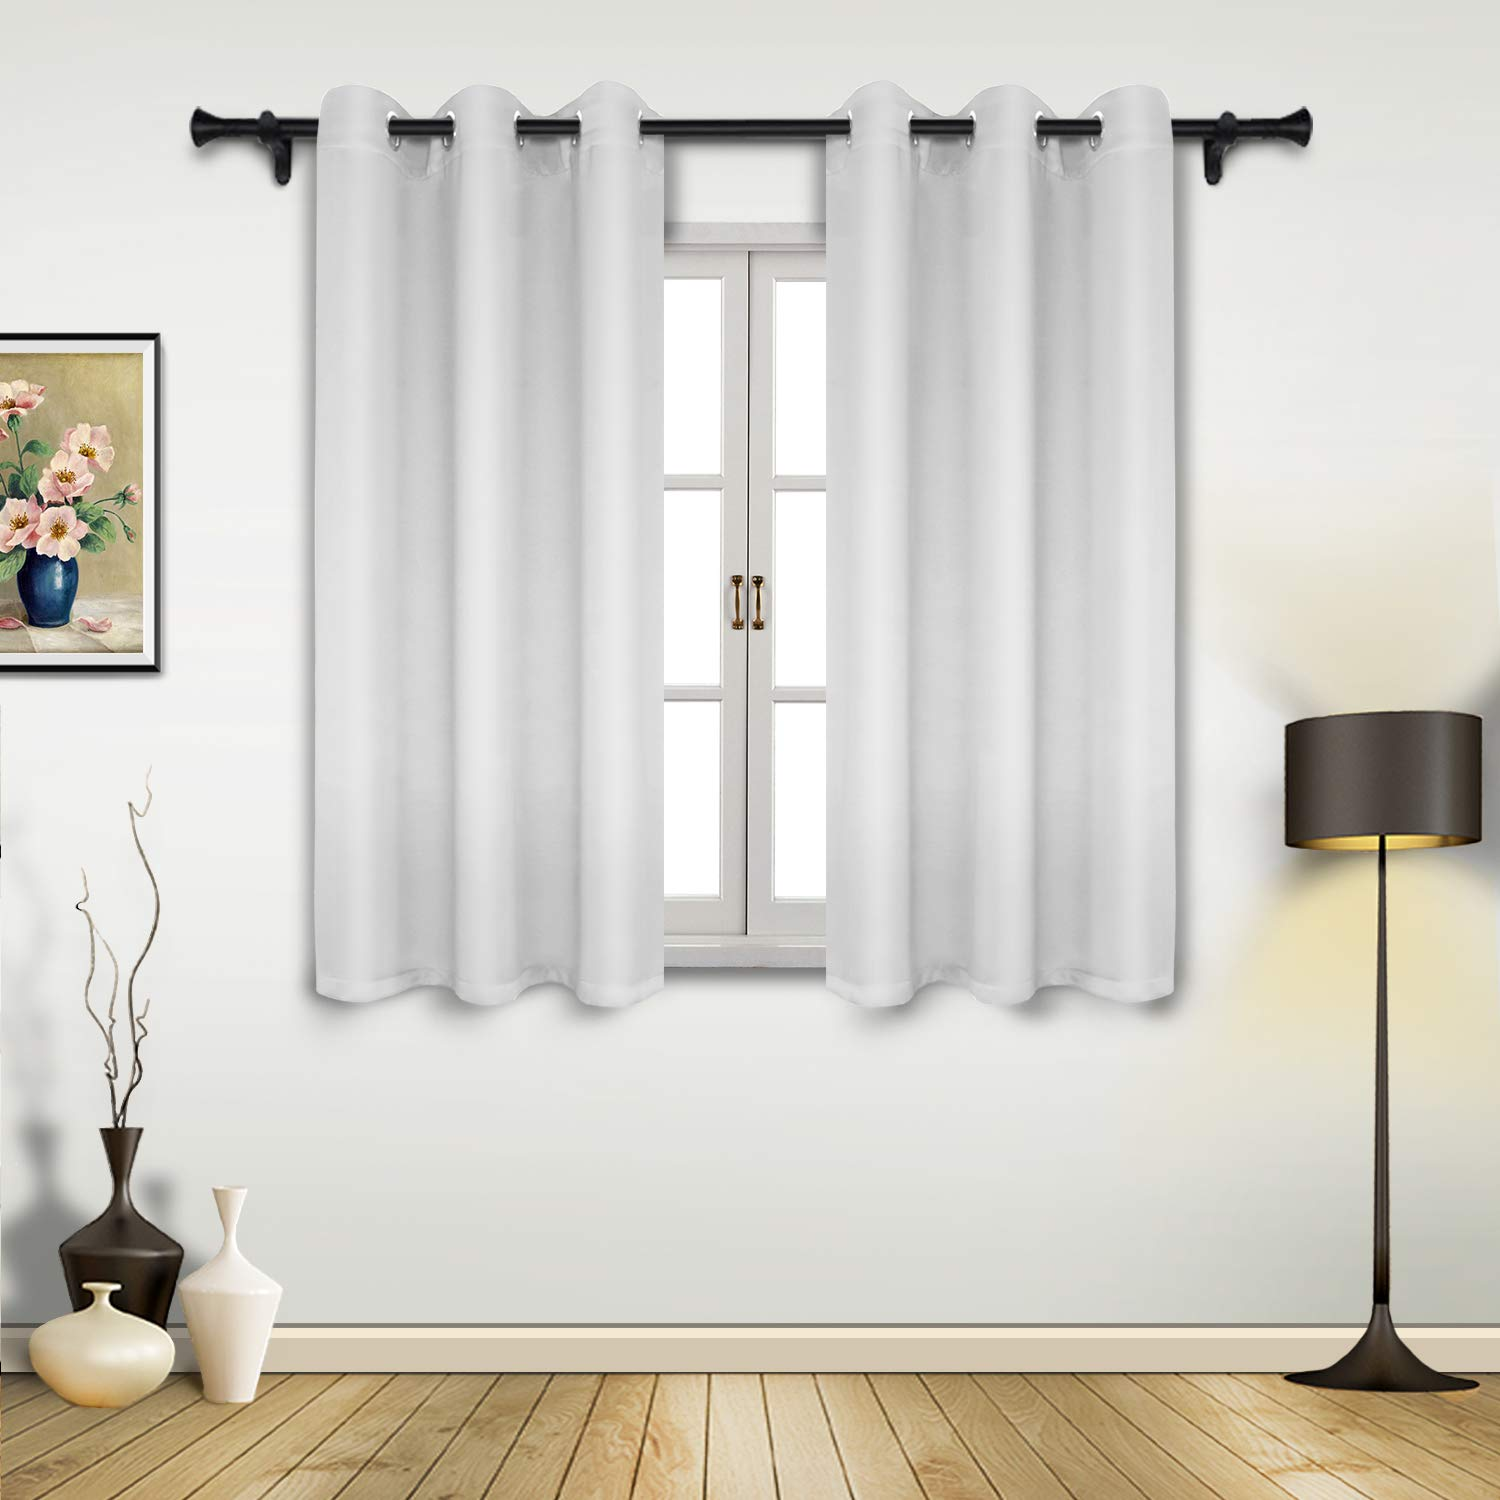 SUO AI TEXTILE Rod Pocket Blackout Curtain Scalloped Valances Blackout Short Curtains for Small Window 42x18 Inch Ture Red 2 Panels Fumily